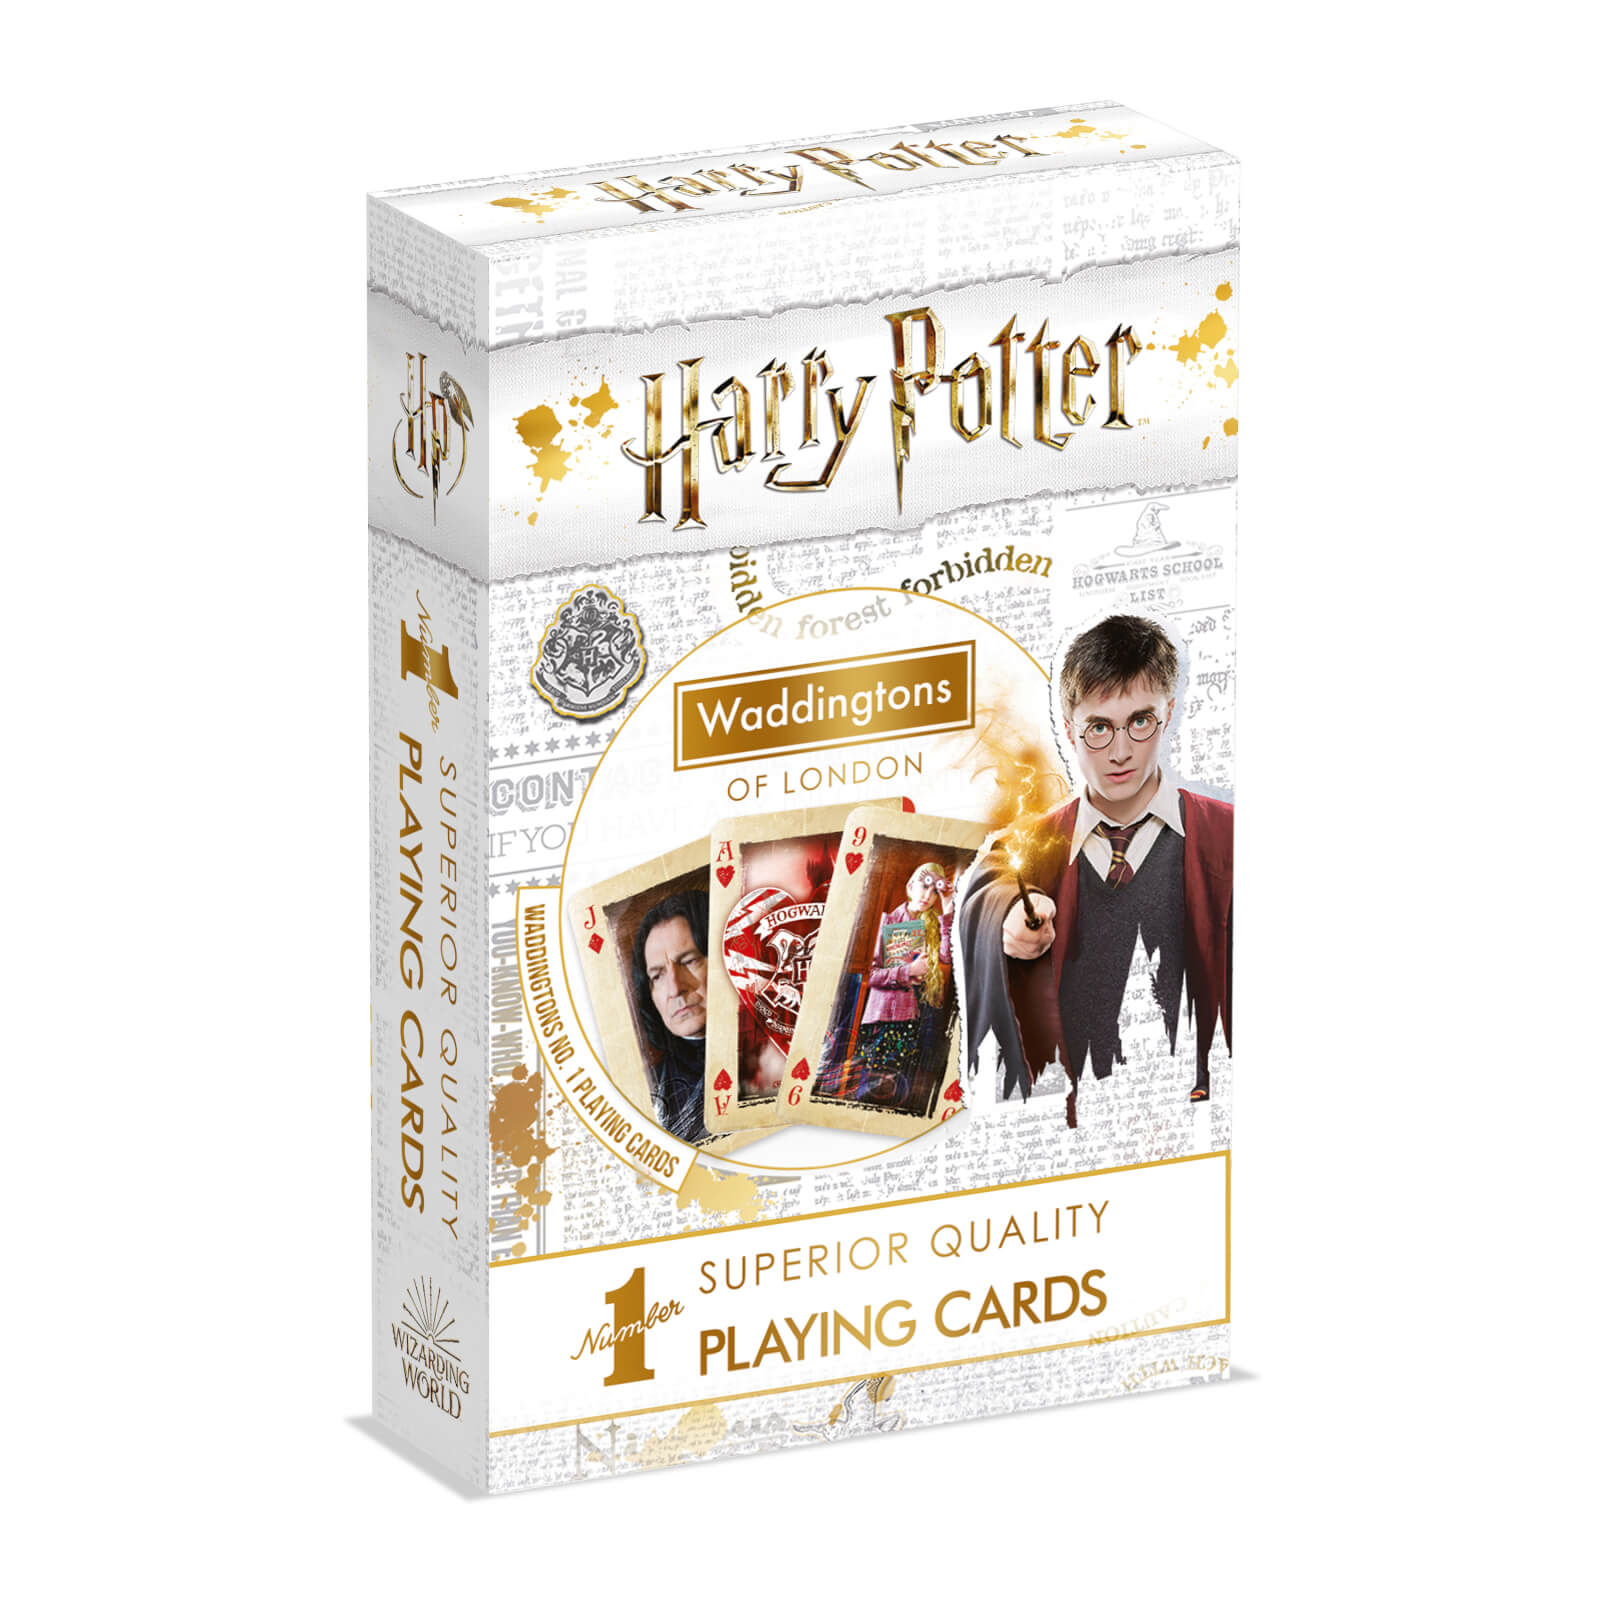 Image of Waddingtons Number 1 Playing Cards - Harry Potter Edition